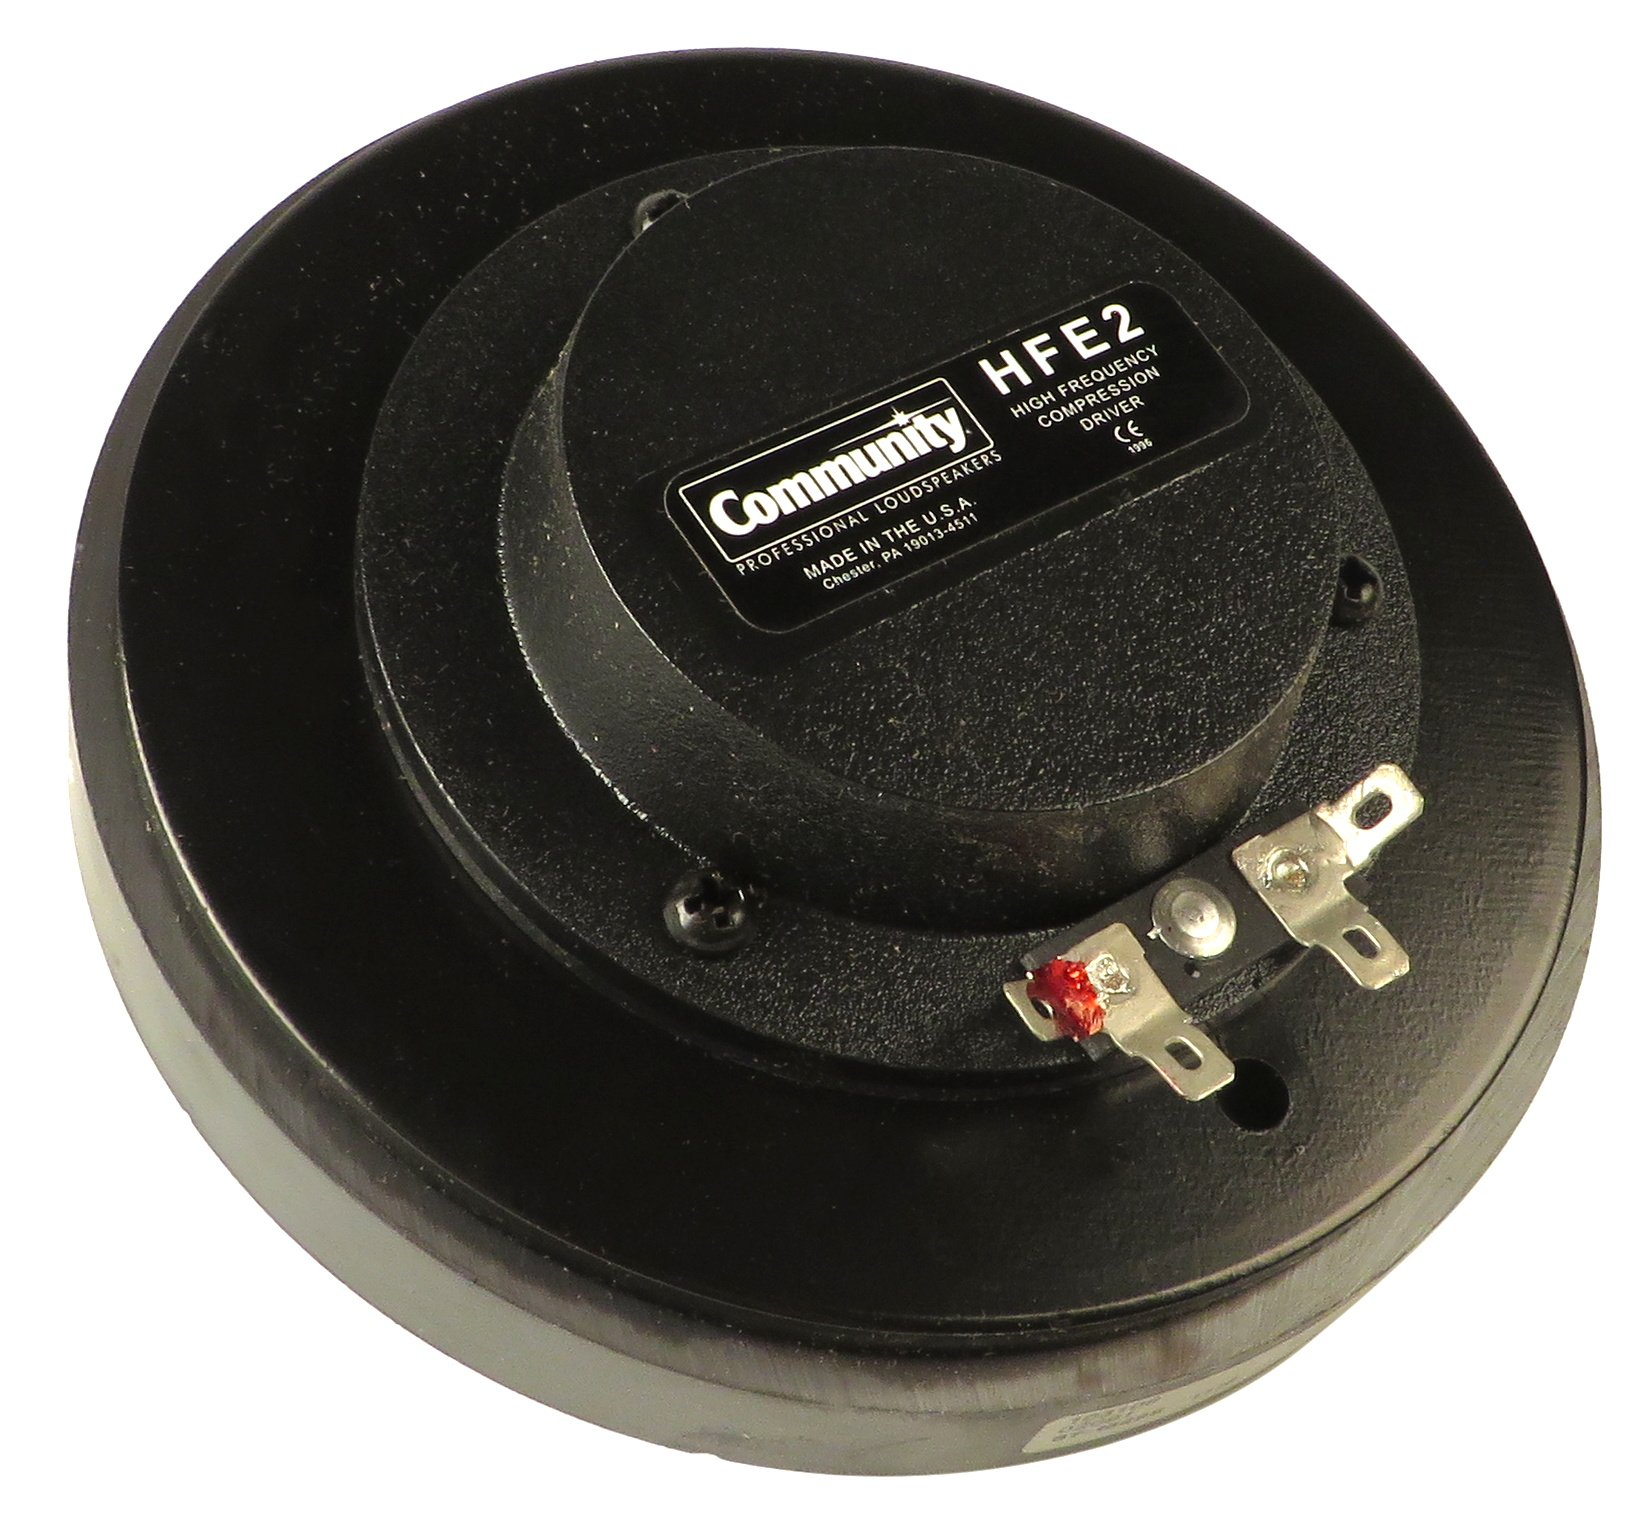 HFE2 Compression Driver for Various Community Cabinets